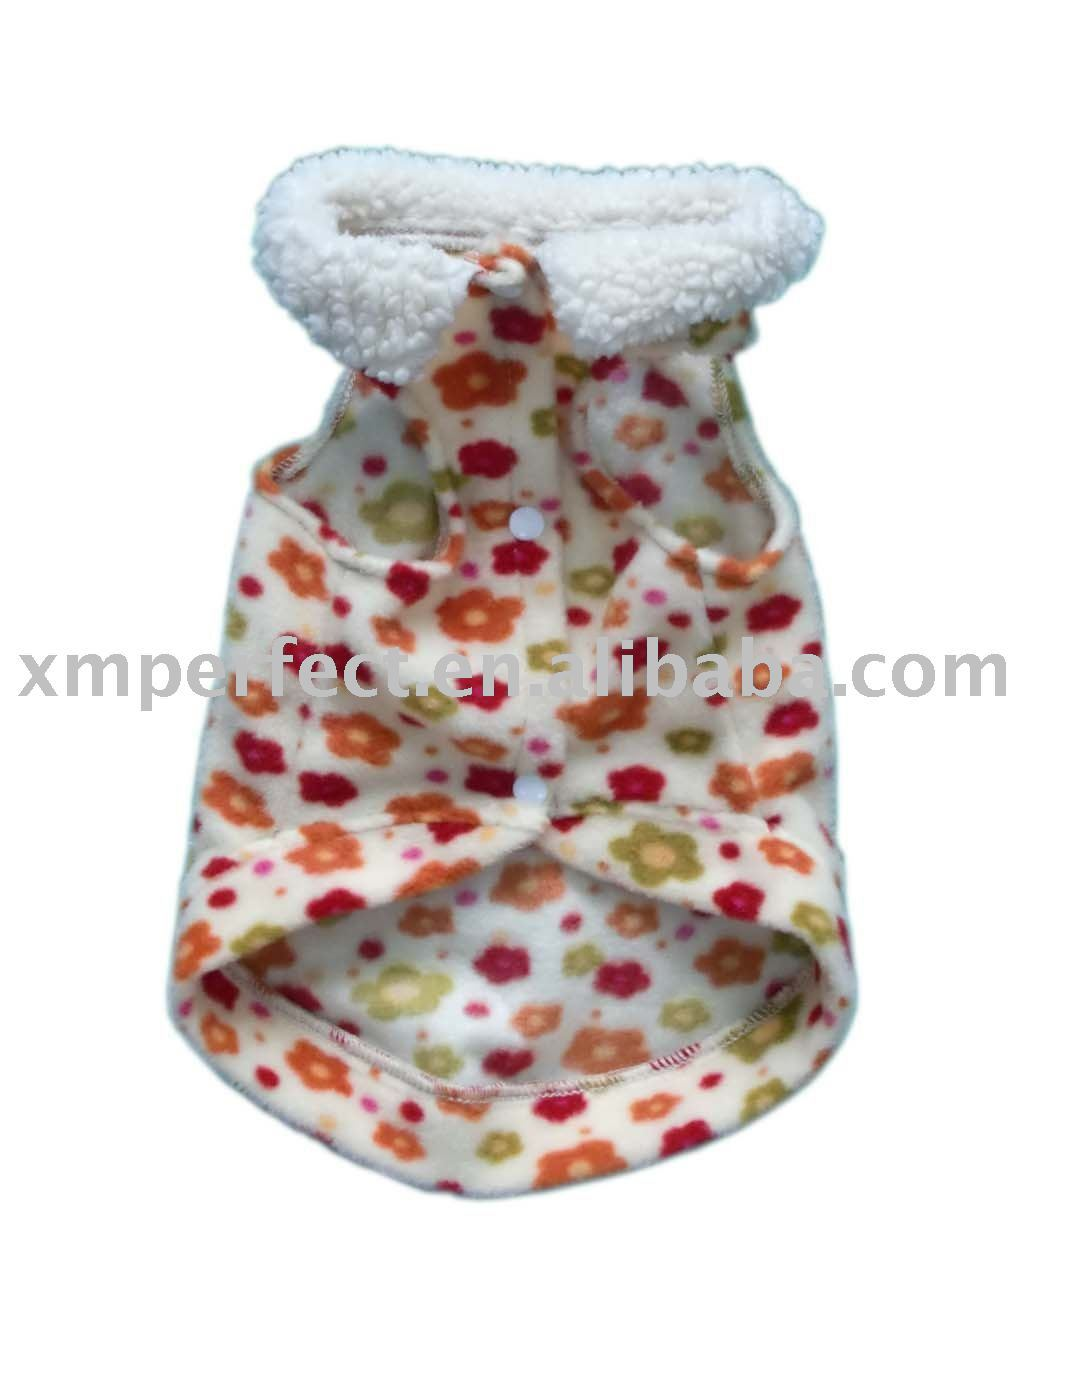 pink pattern fleece dog coat with sherpa fleece collar